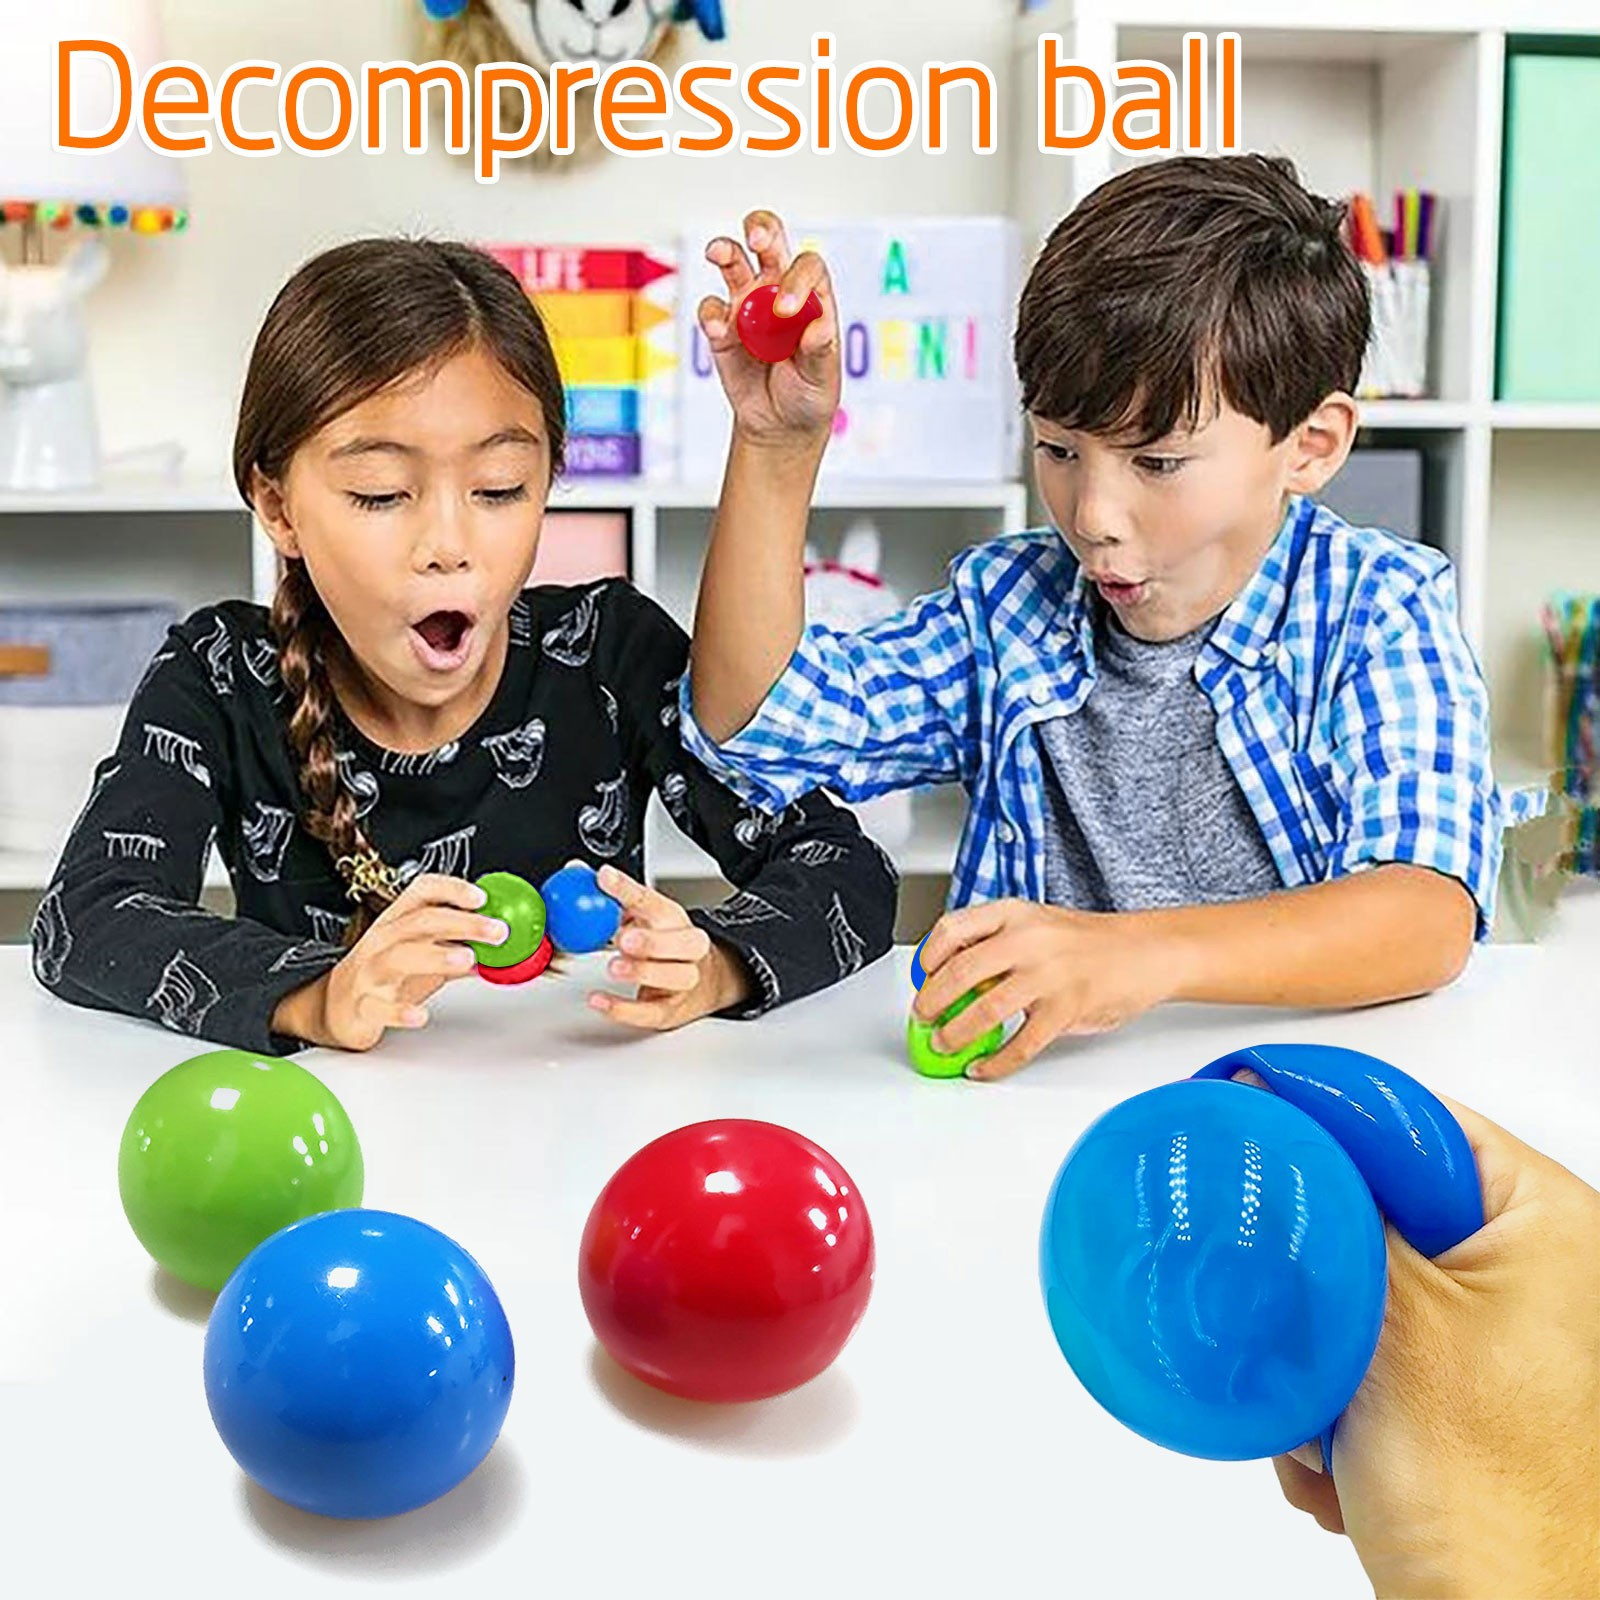 Relief-Toy Tossing-Ball Sticky-Target-Ball-Stress Ceiling Gift Adults Kids Novelty Hot img4